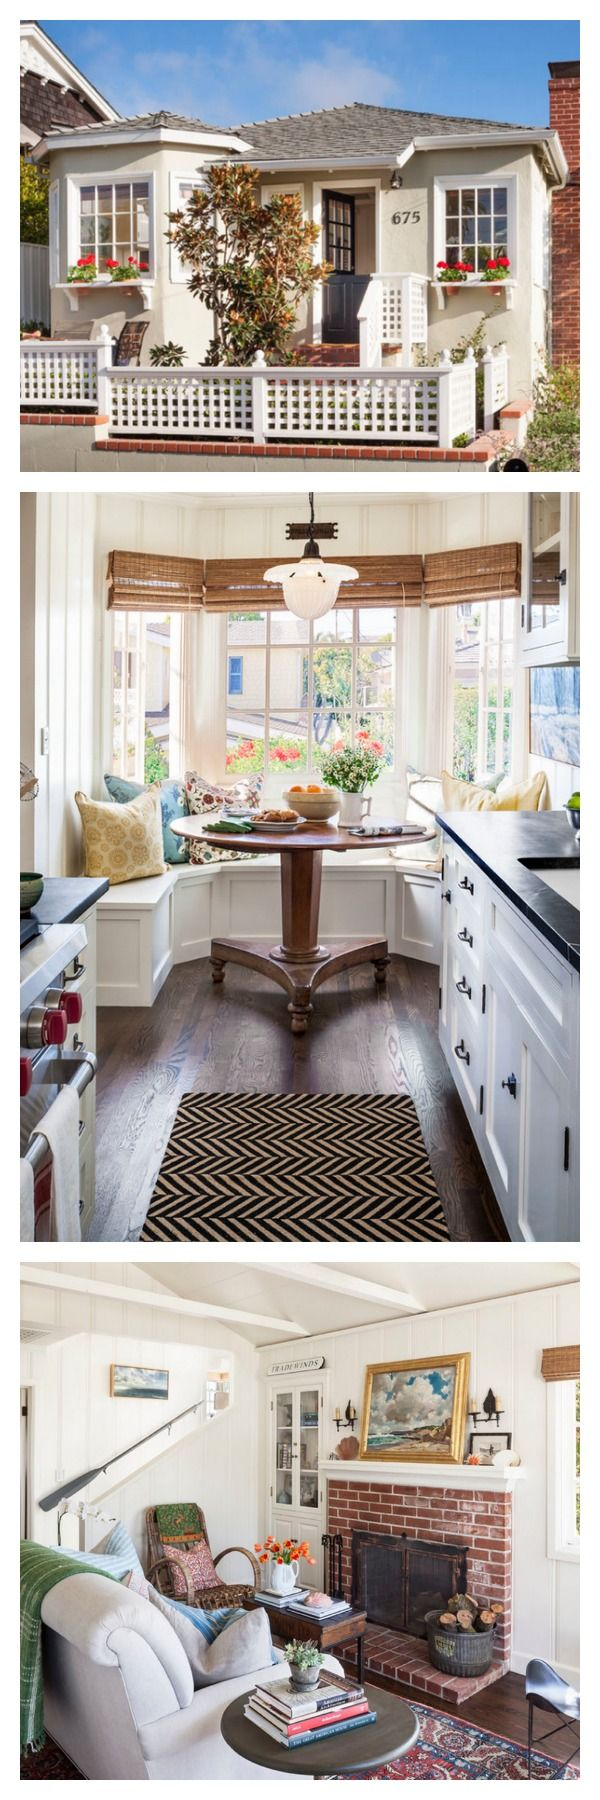 Beach Cottage Kitchen 17 Best Ideas About Beach Cottage Kitchens On Pinterest Beach